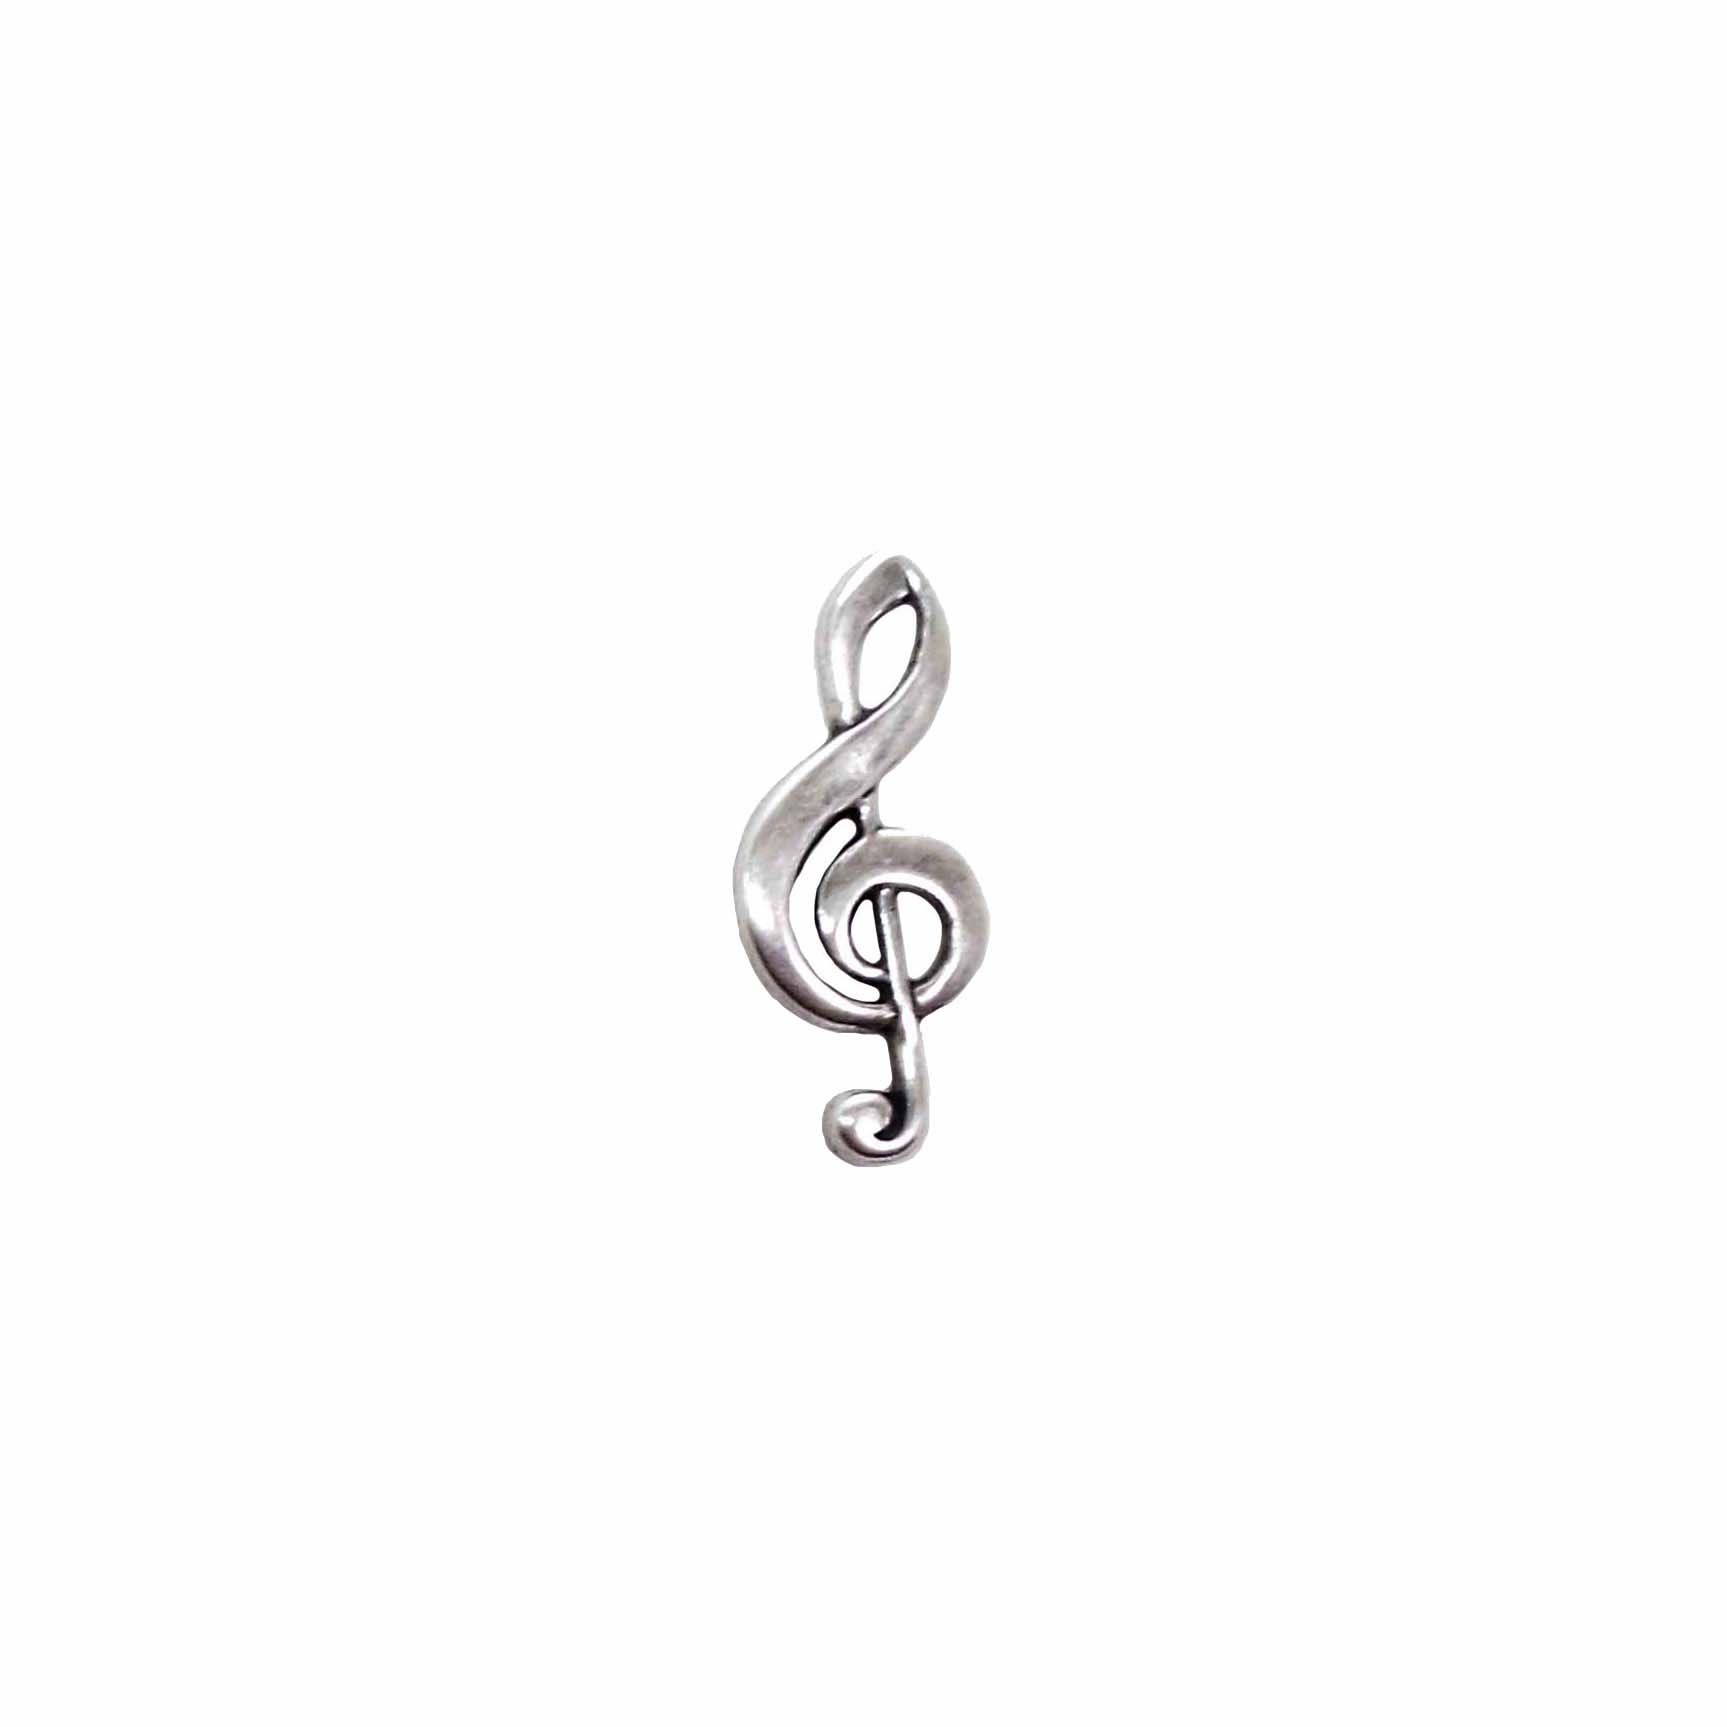 music charm, treble clef, silver, 02248, music, silverware silverplate, silver charm, music, musical, charm